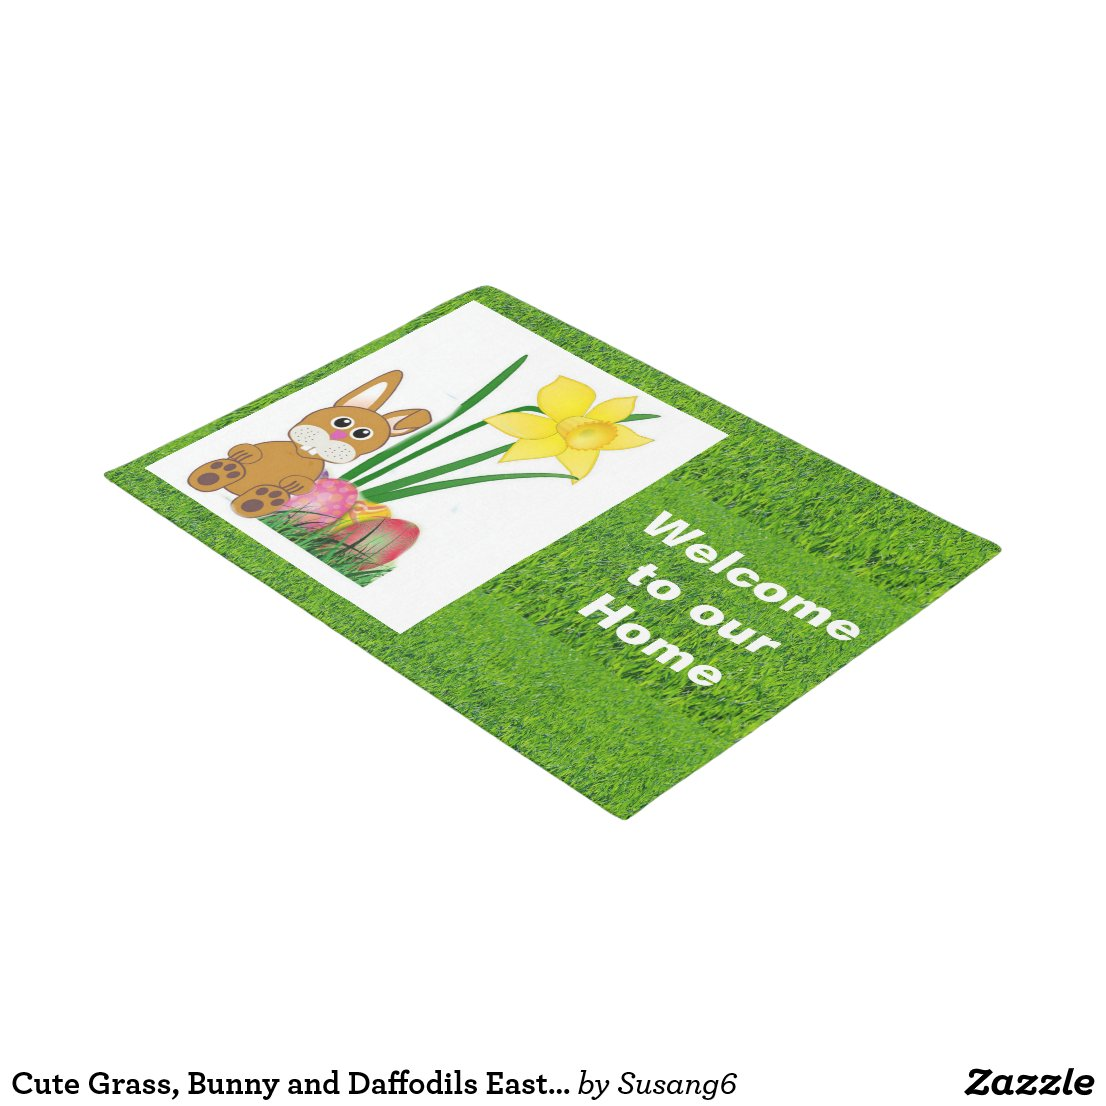 Cute Grass, Bunny and Daffodils Easter Doormat